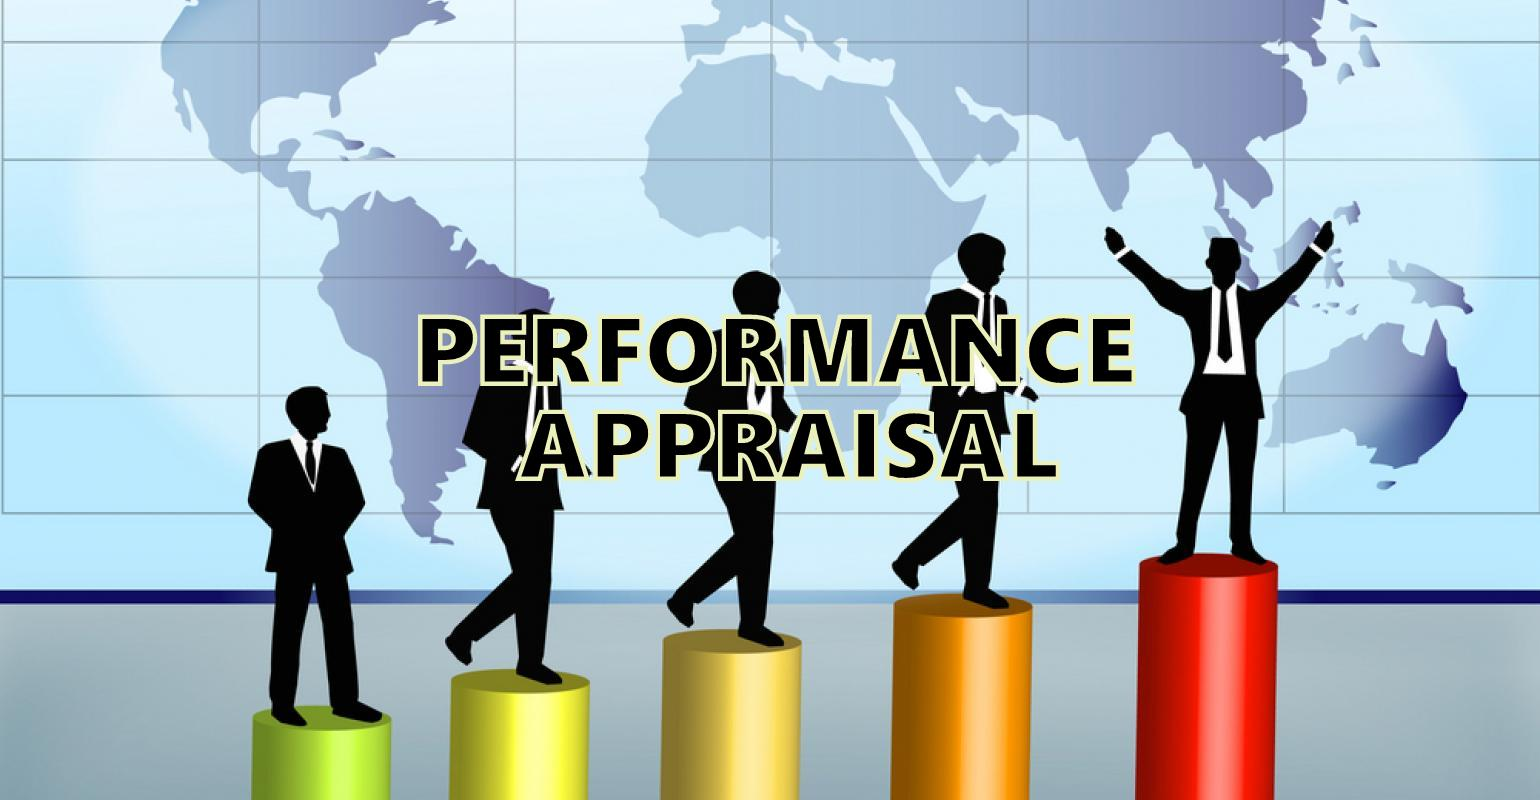 Bsc dissertation objections for appraisals